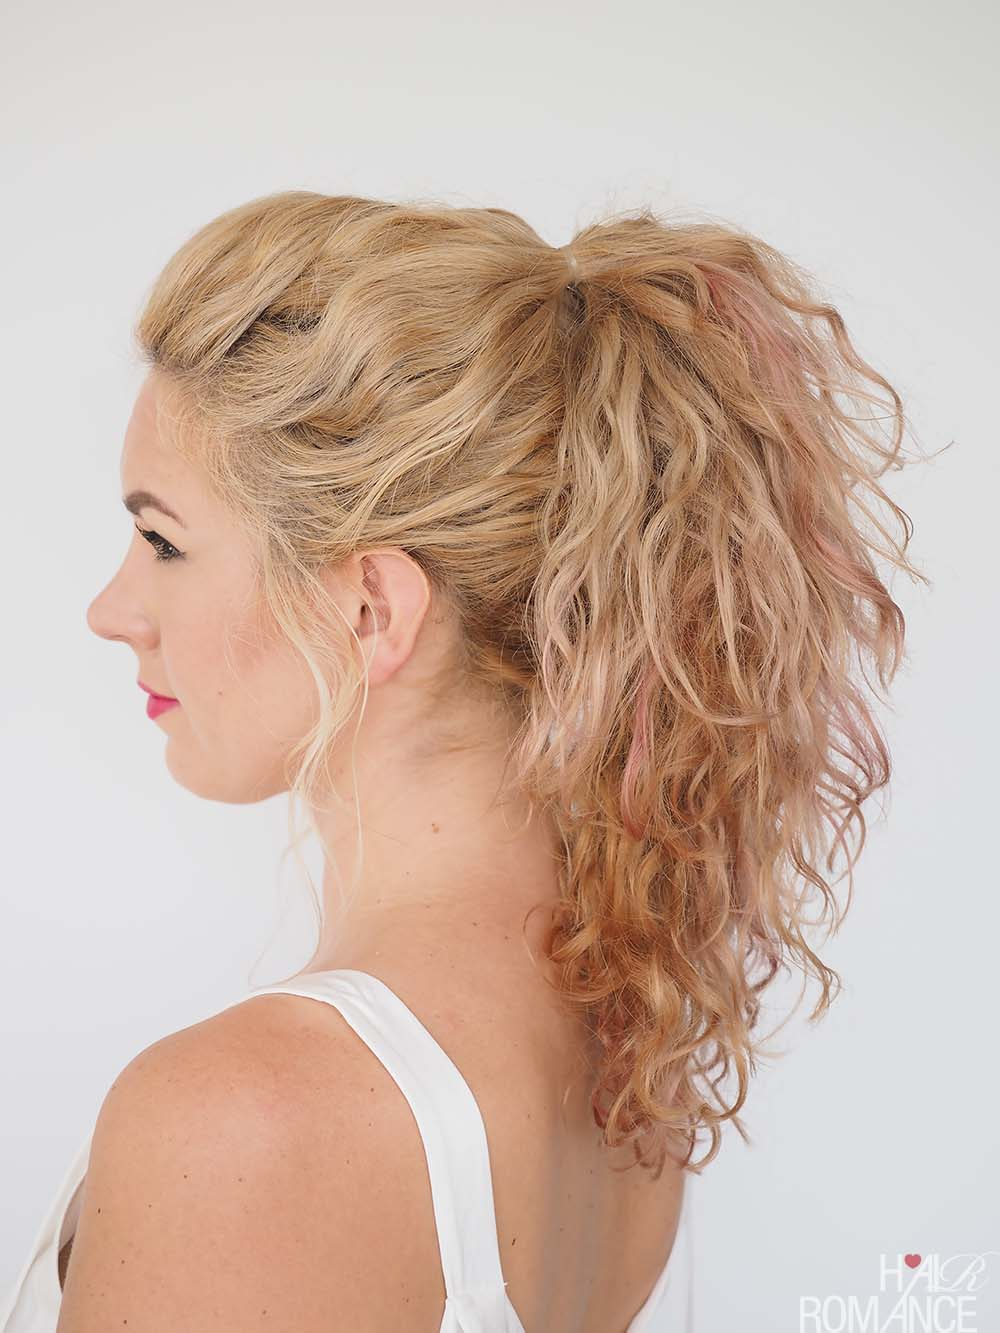 Trick ponytail tutorial for curly hair